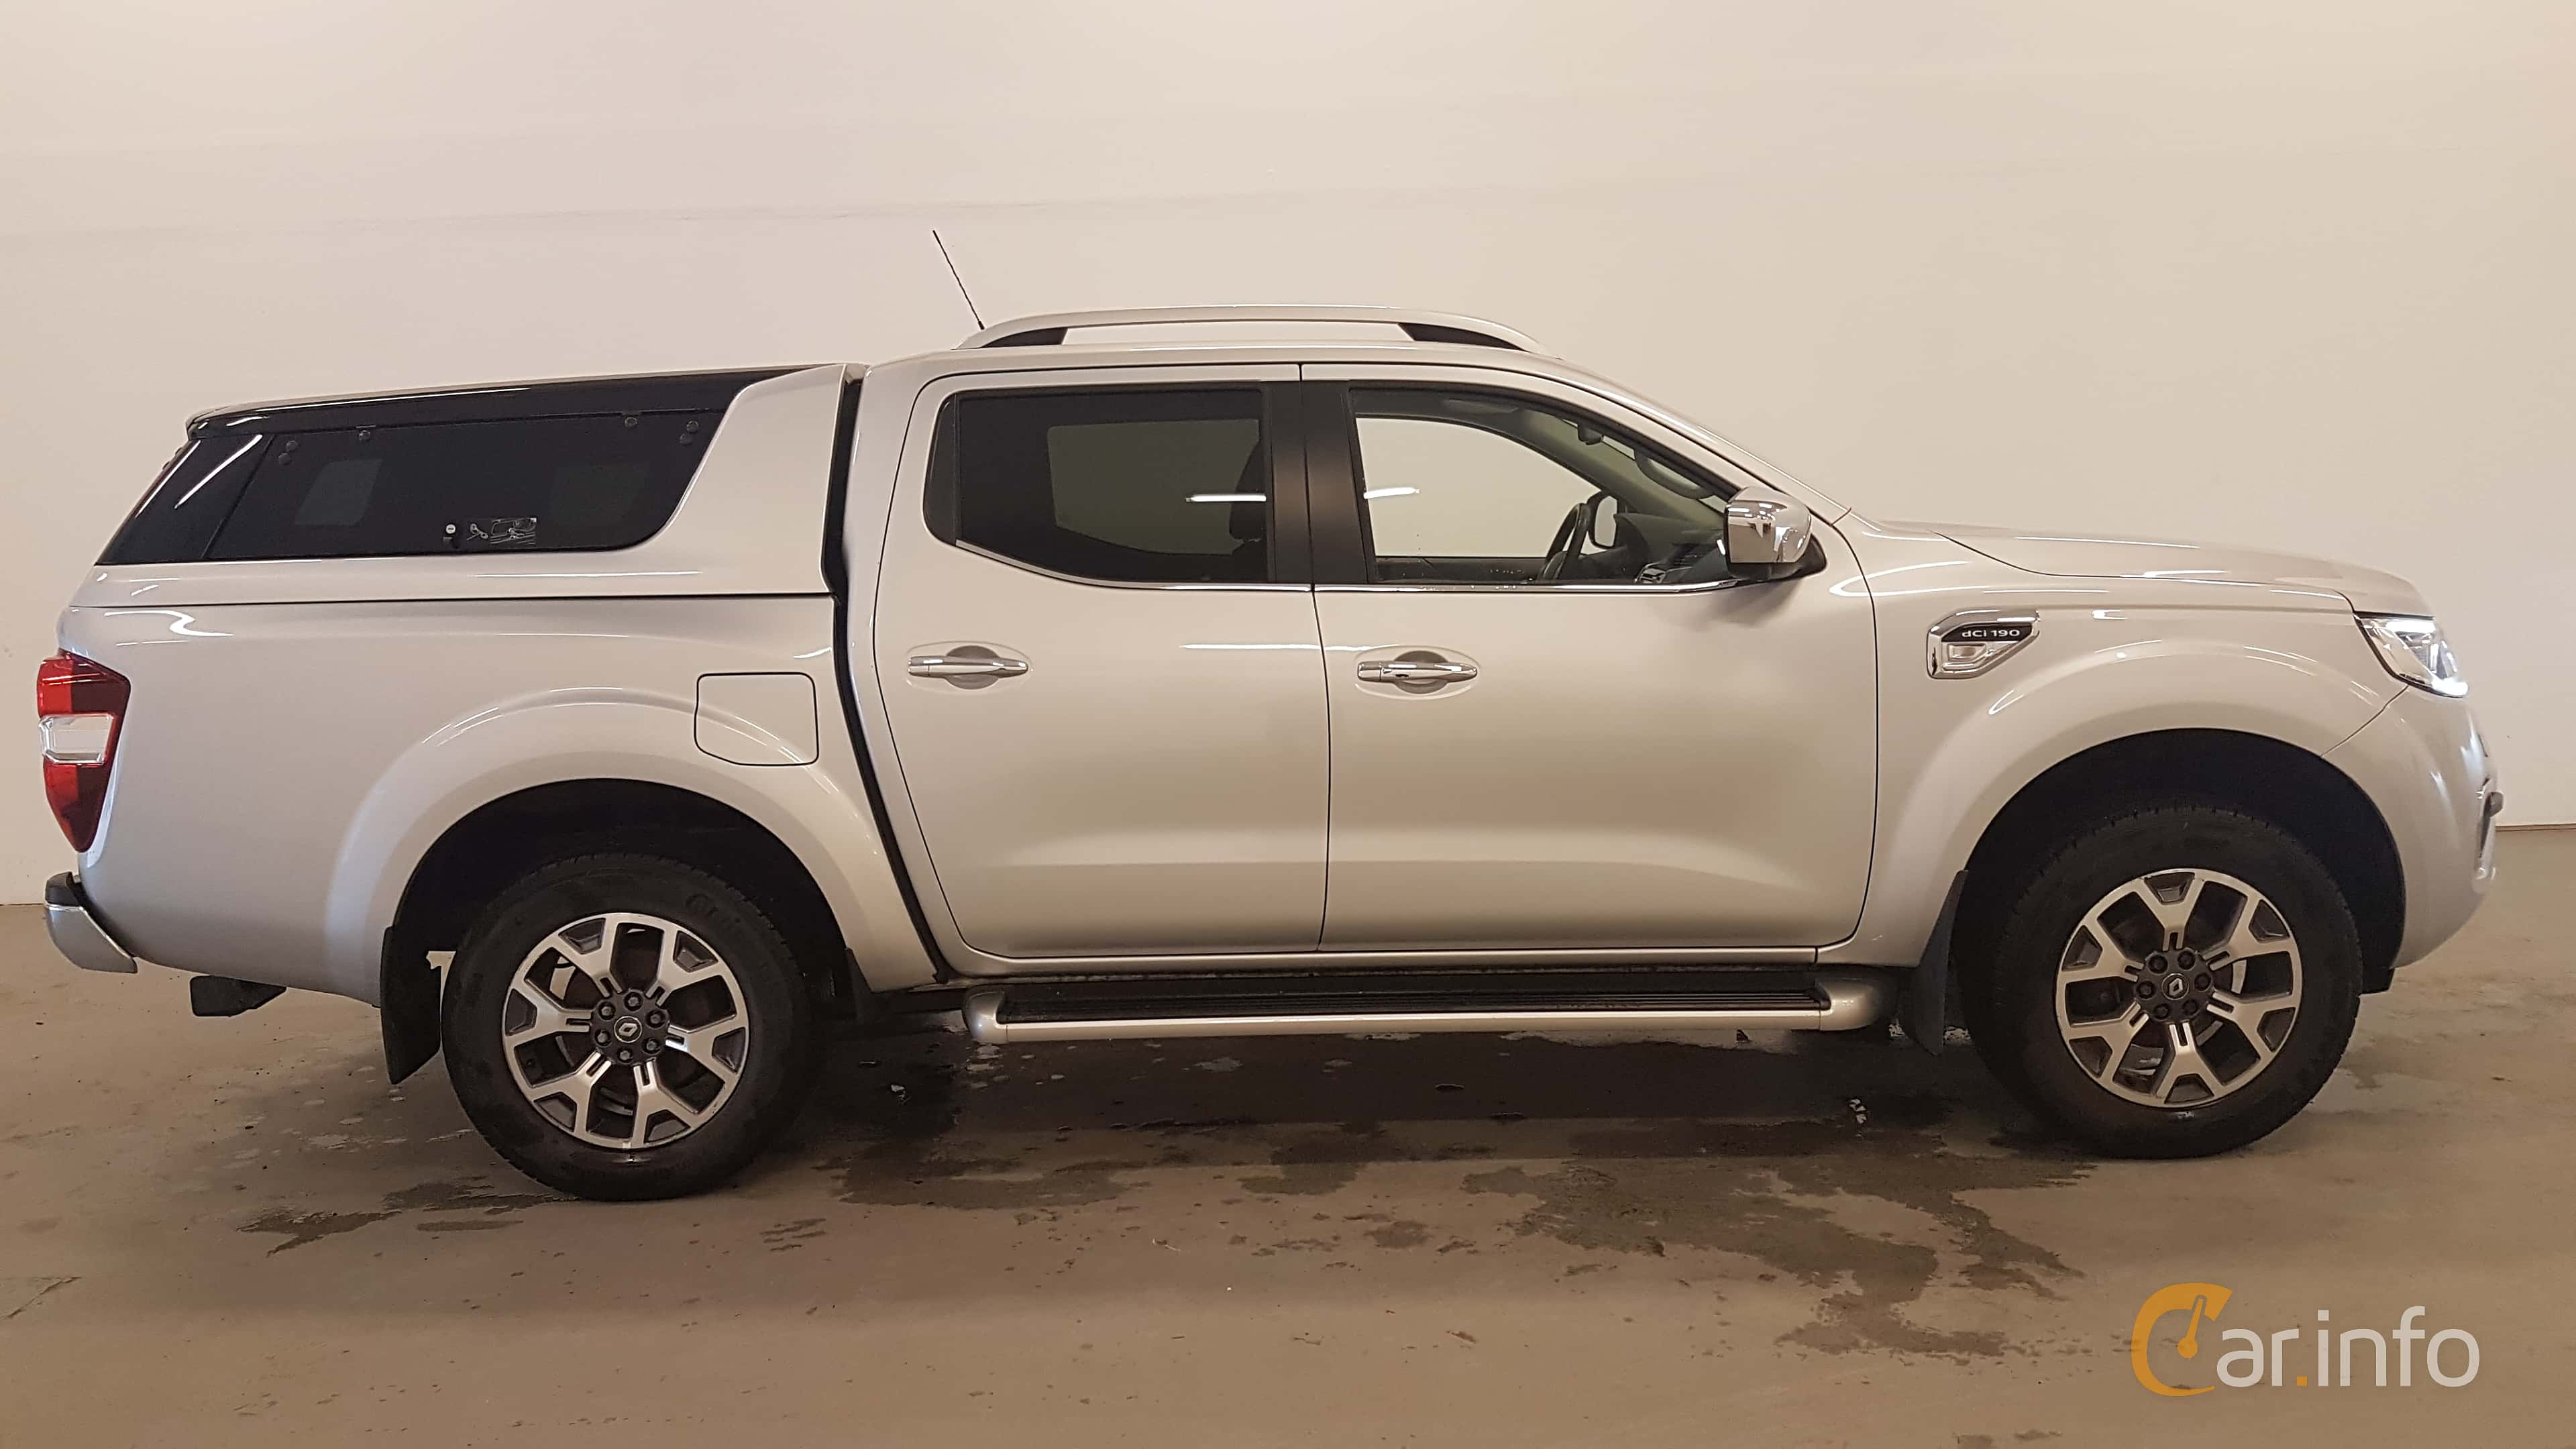 Renault Alaskan 1st Generation 2.3 dCi 4WD Automatic, 7-speed